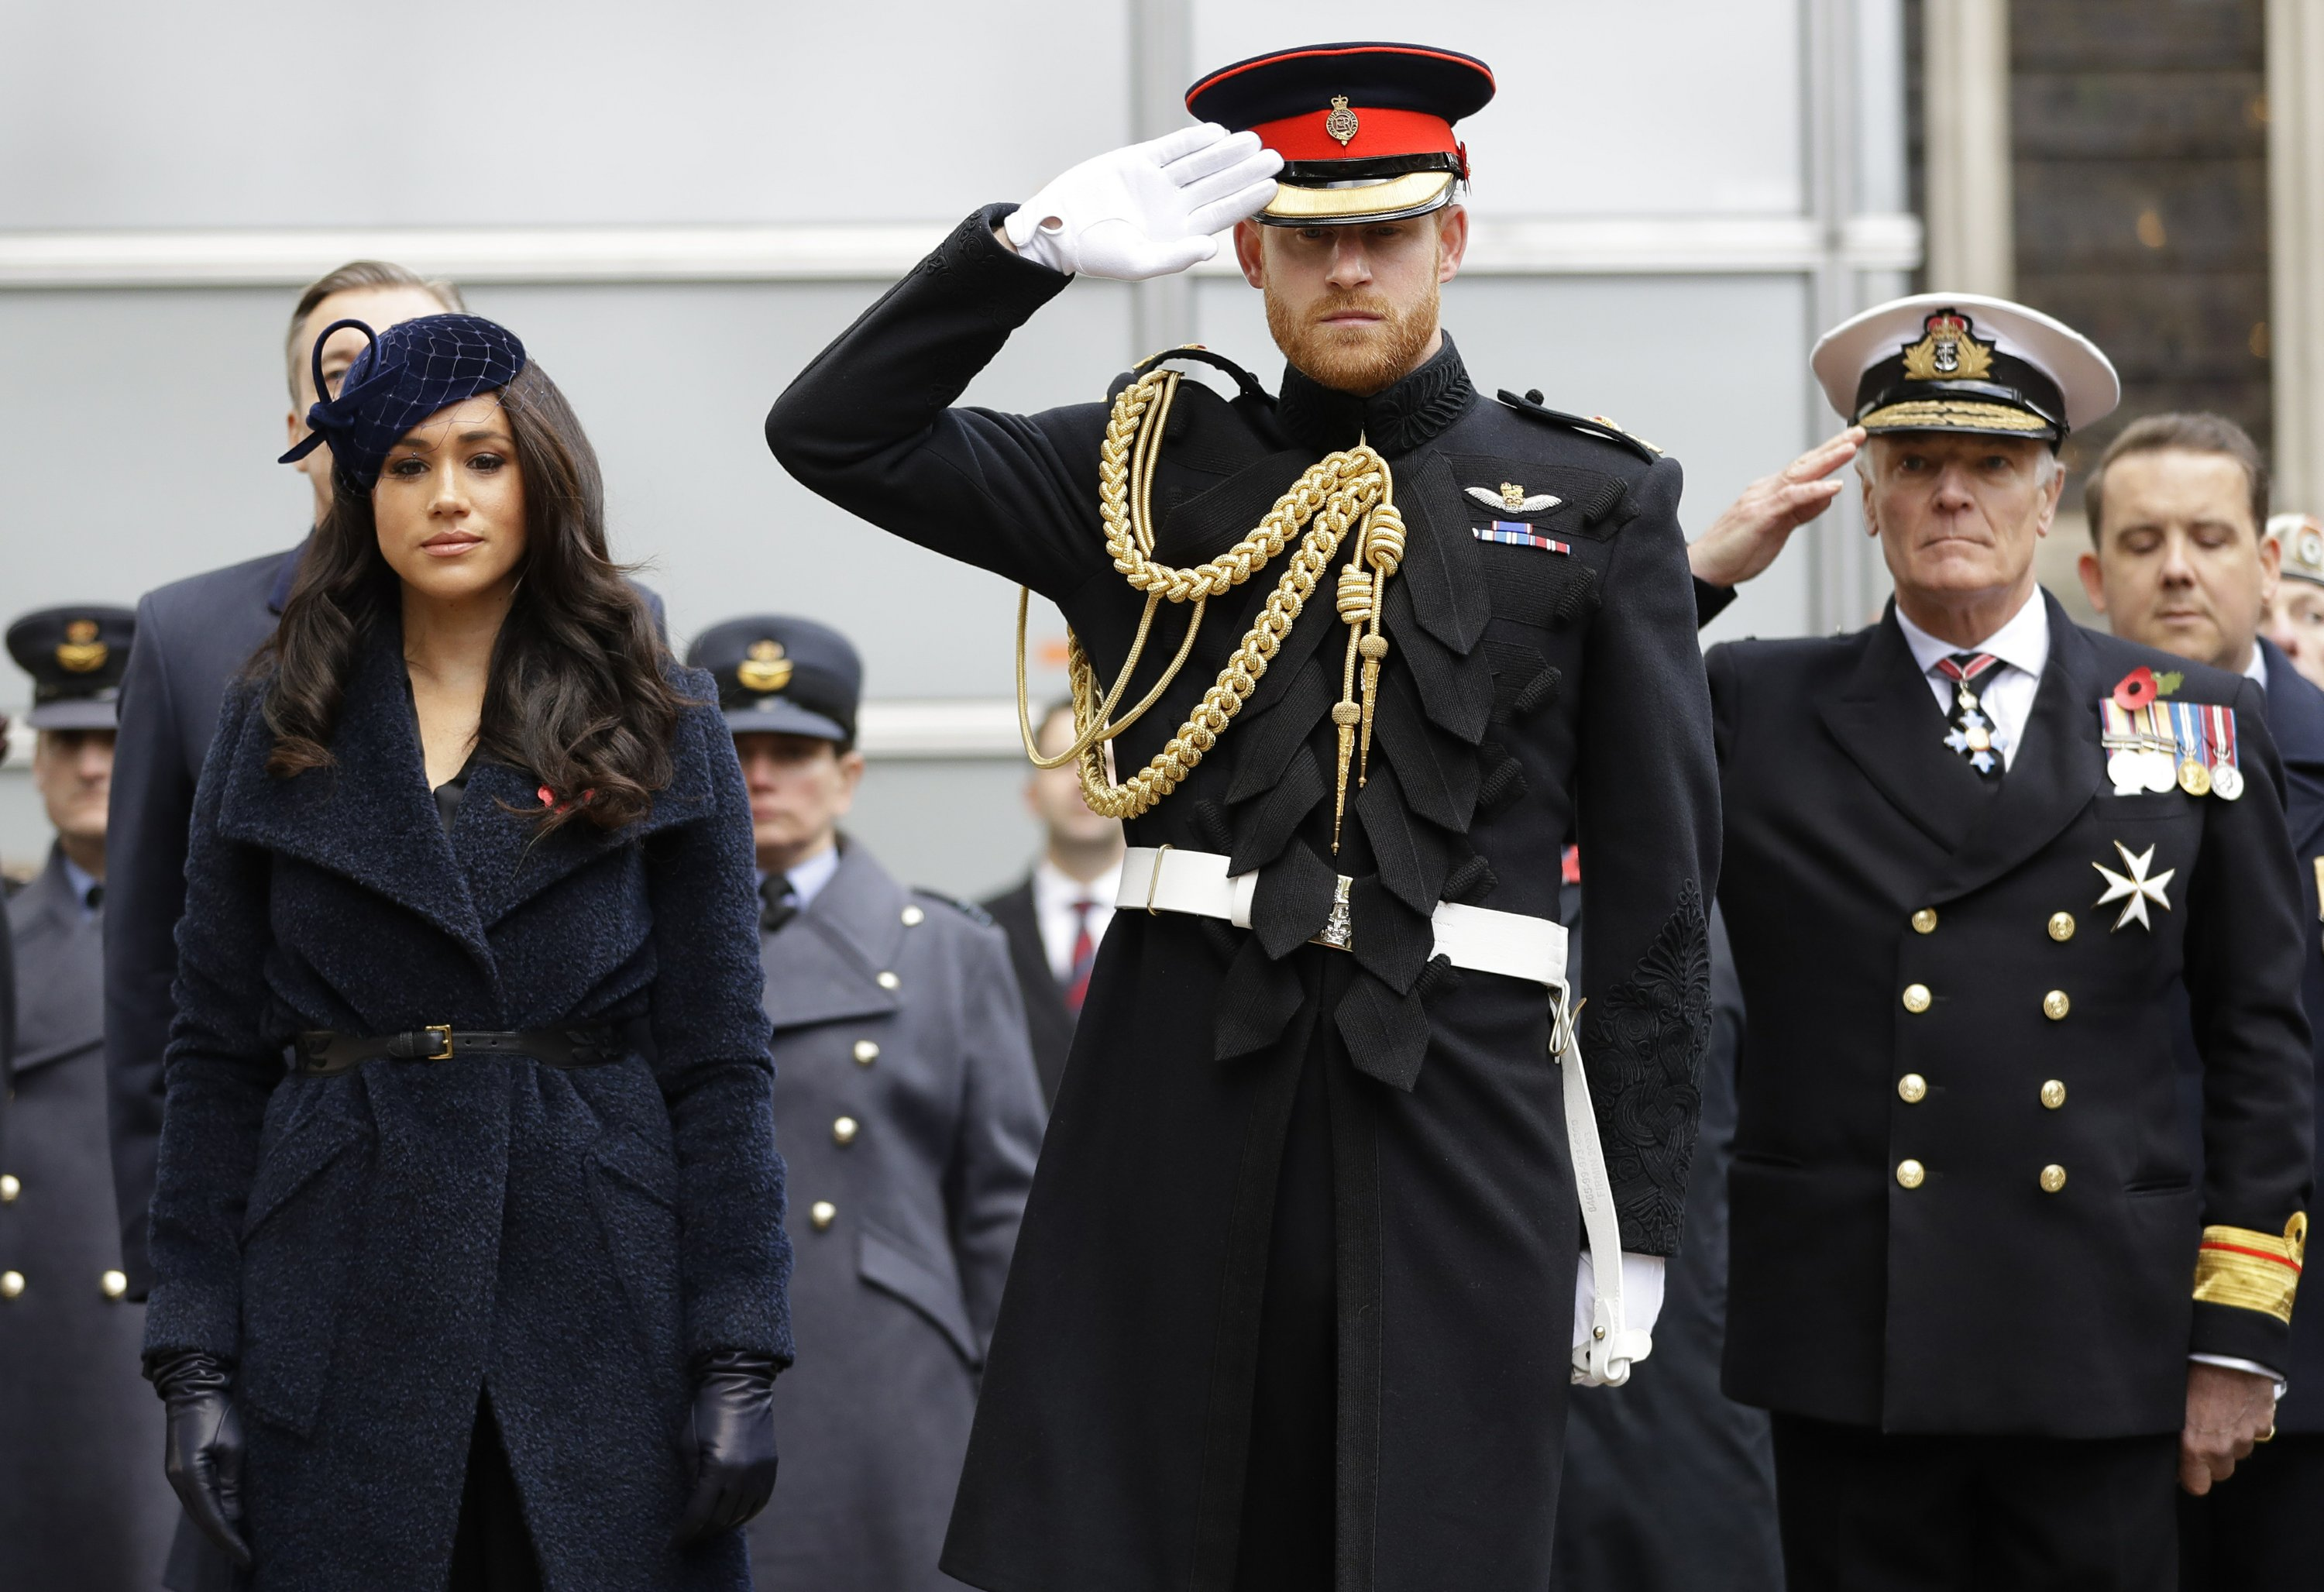 royal farewell harry meghan on final duty before new life royal farewell harry meghan on final